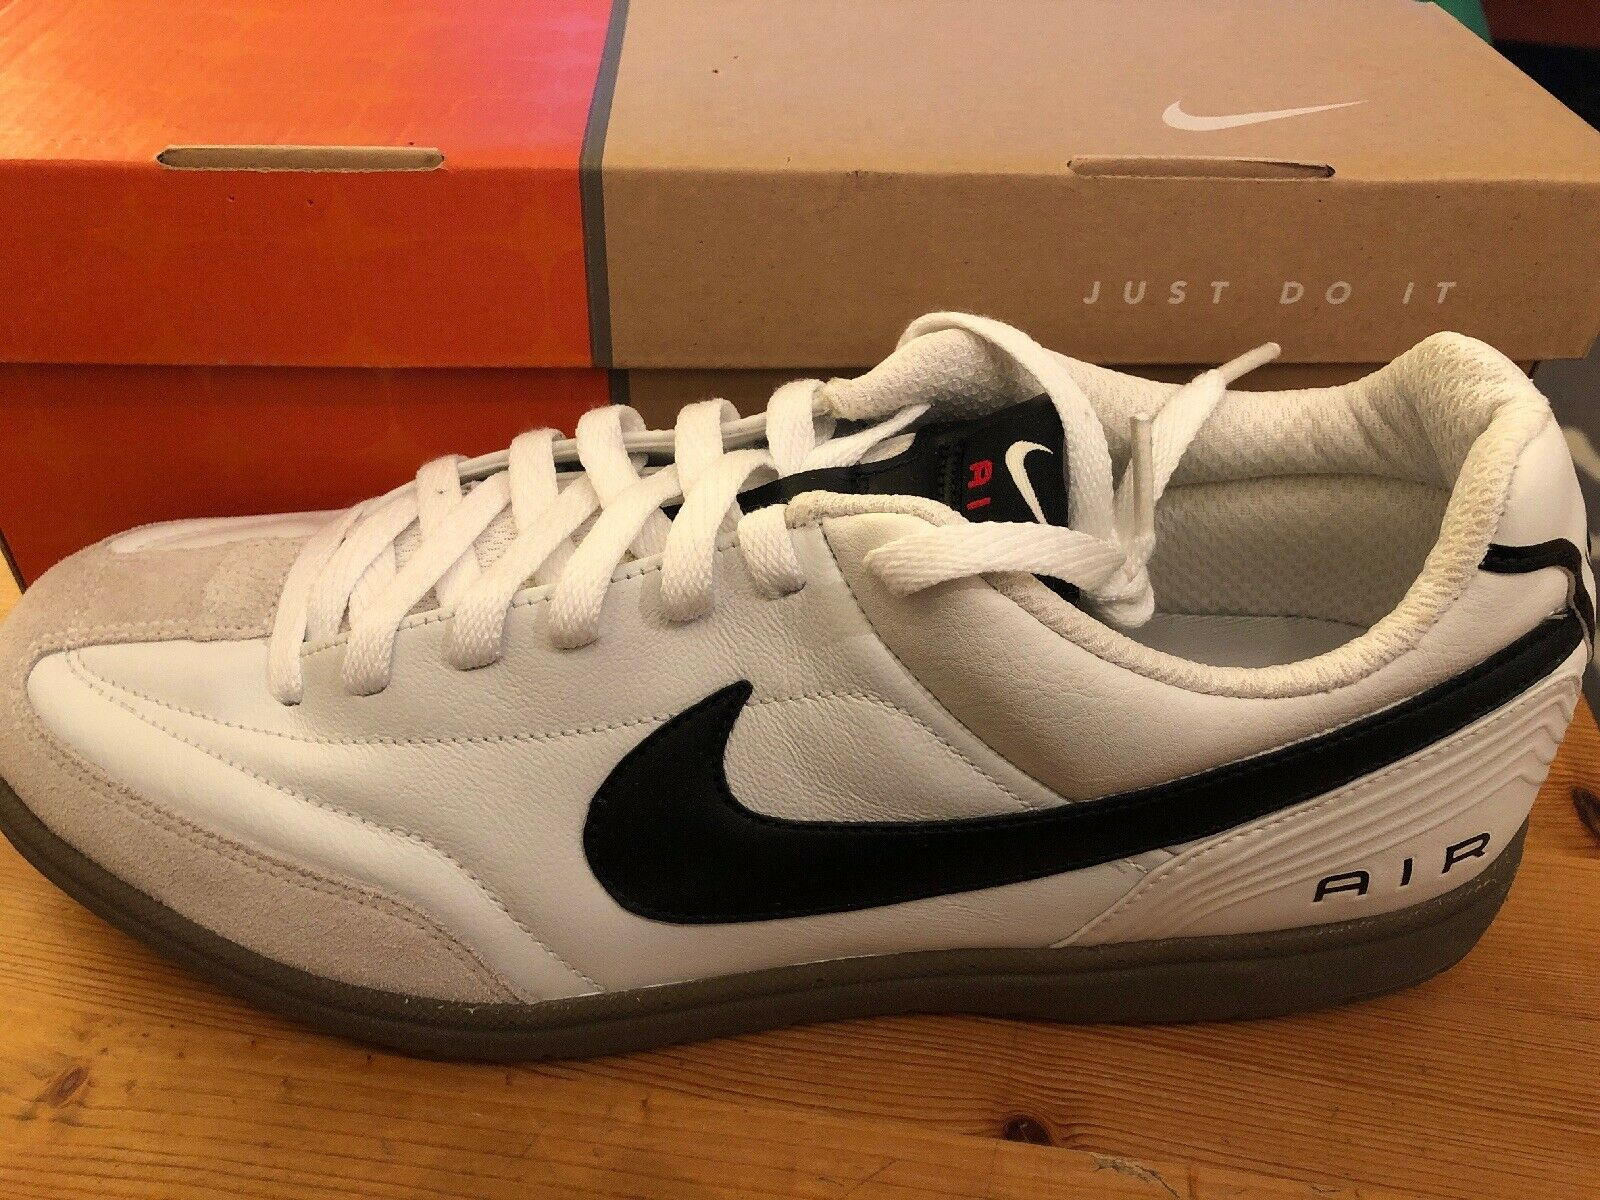 NEW  NIKE AIR TIEMPO RIVAL LOW SNEAKERS MEN SHOES 11401-101 SIZE 11 White RARE